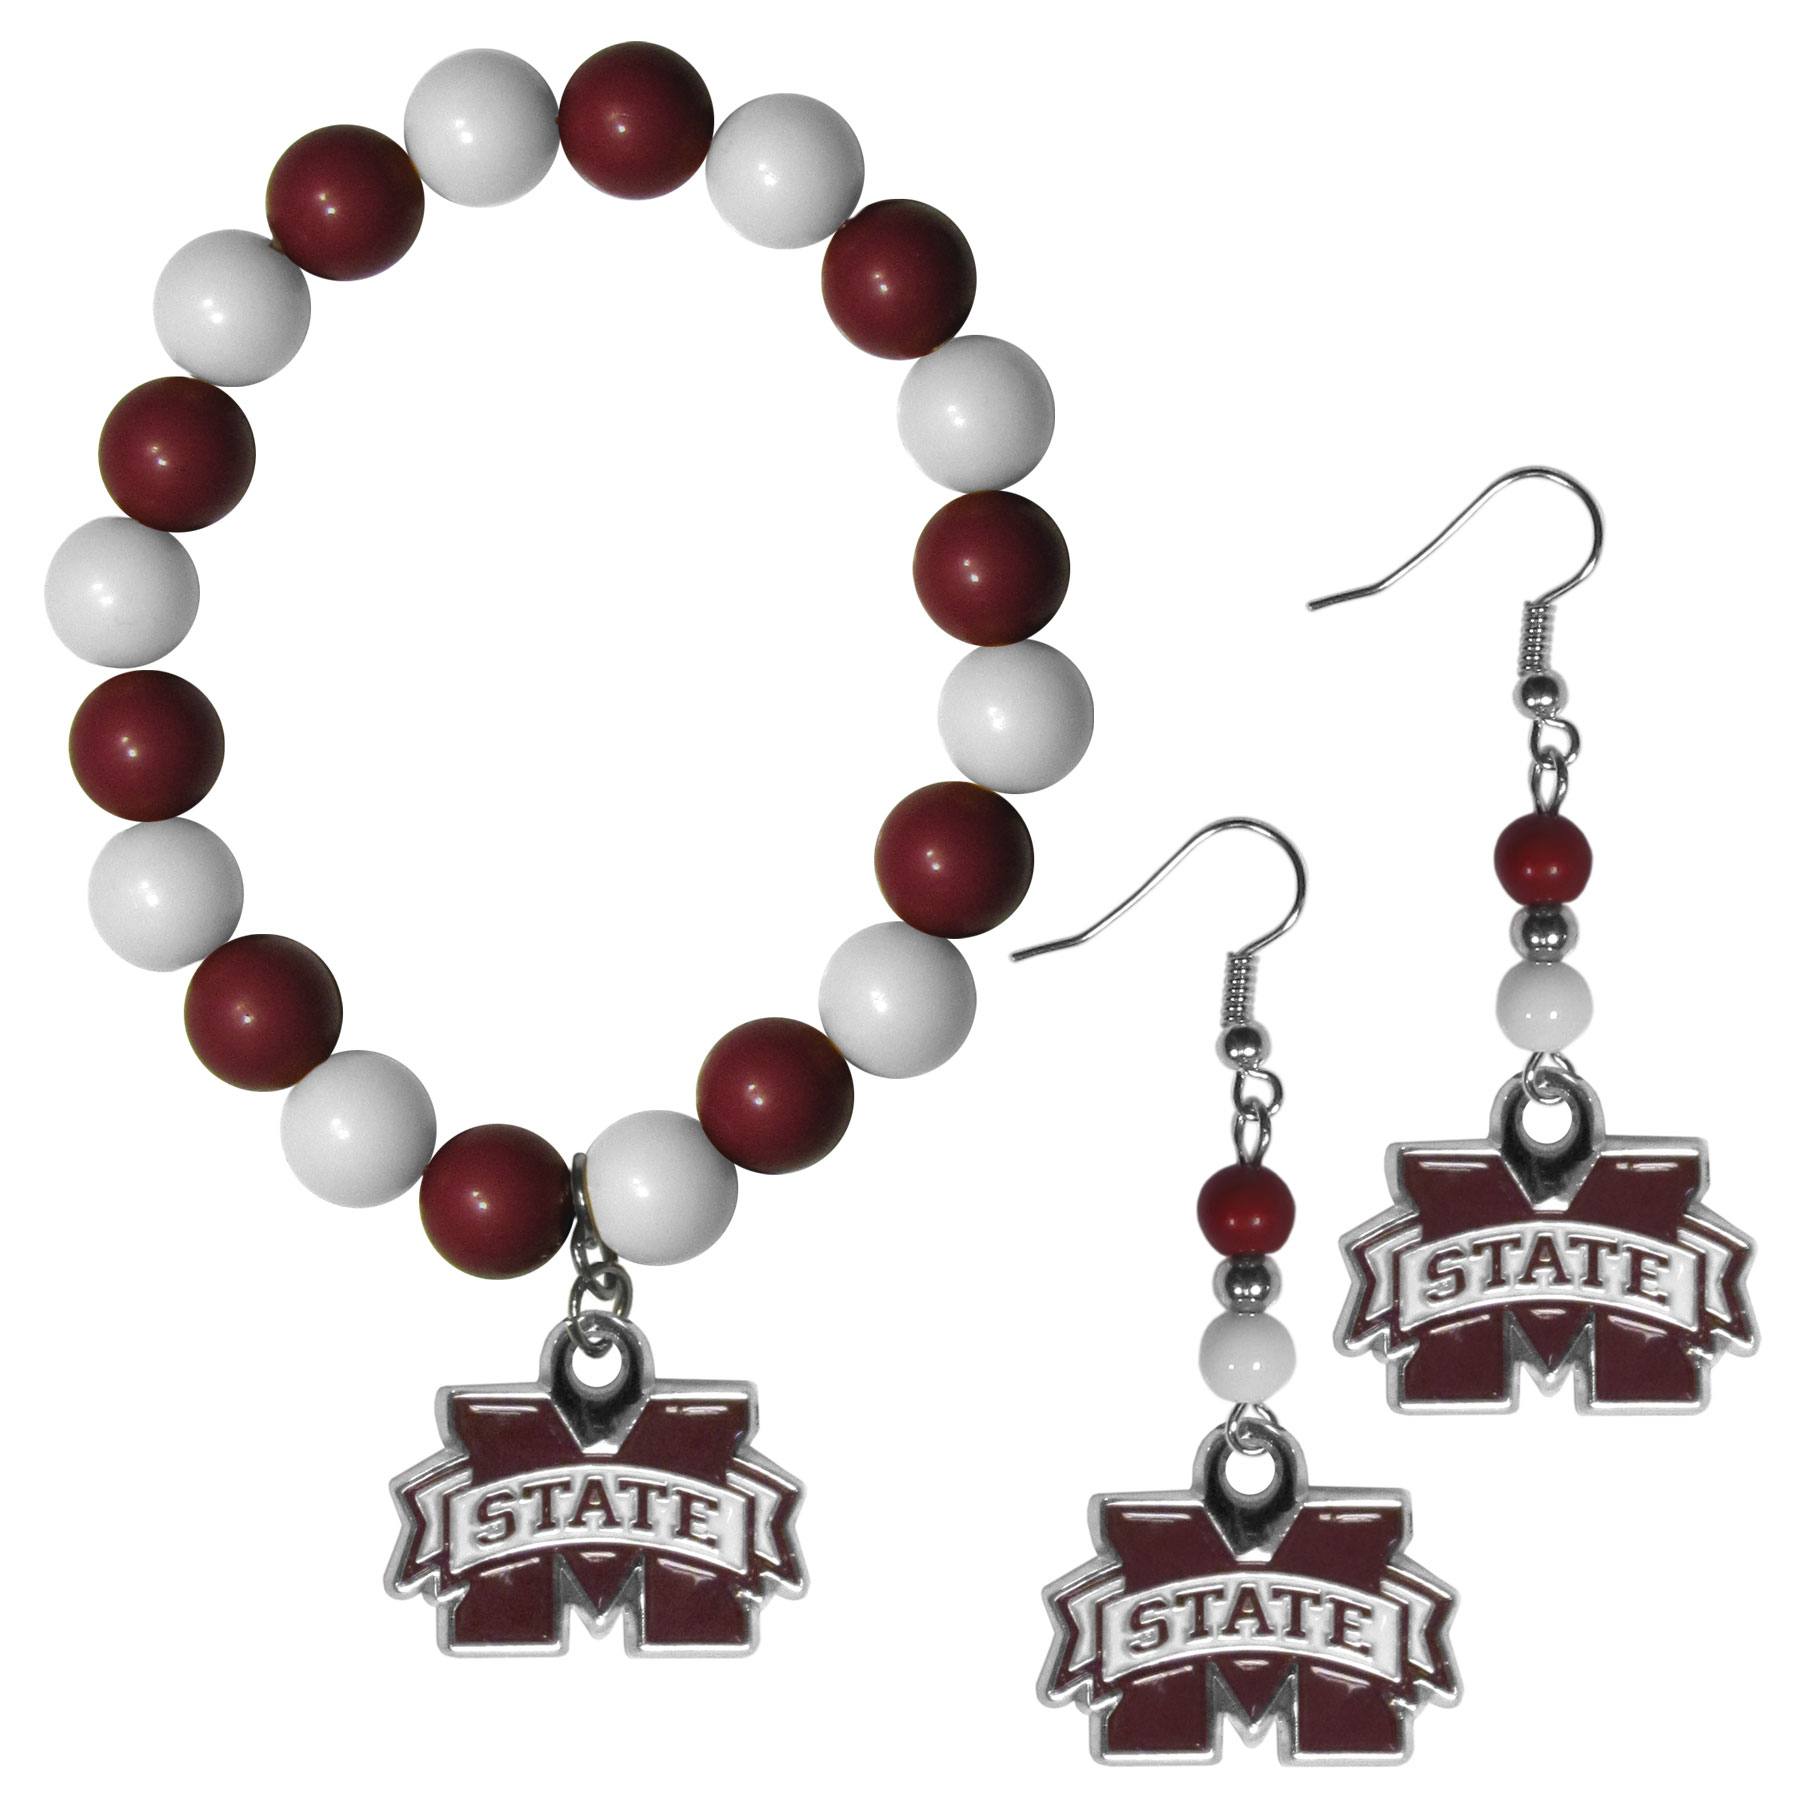 Mississippi St. Bulldogs Fan Bead Earrings and Bracelet Set - This fun and colorful Mississippi St. Bulldogs fan bead jewelry set is fun and casual with eye-catching beads in bright team colors. The fashionable dangle earrings feature a team colored beads that drop down to a carved and enameled charm. The stretch bracelet has larger matching beads that make a striking statement and have a matching team charm. These sassy yet sporty jewelry pieces make a perfect gift for any female fan. Spice up your game-day outfit with these fun colorful earrings and bracelet that are also cute enough for any day.